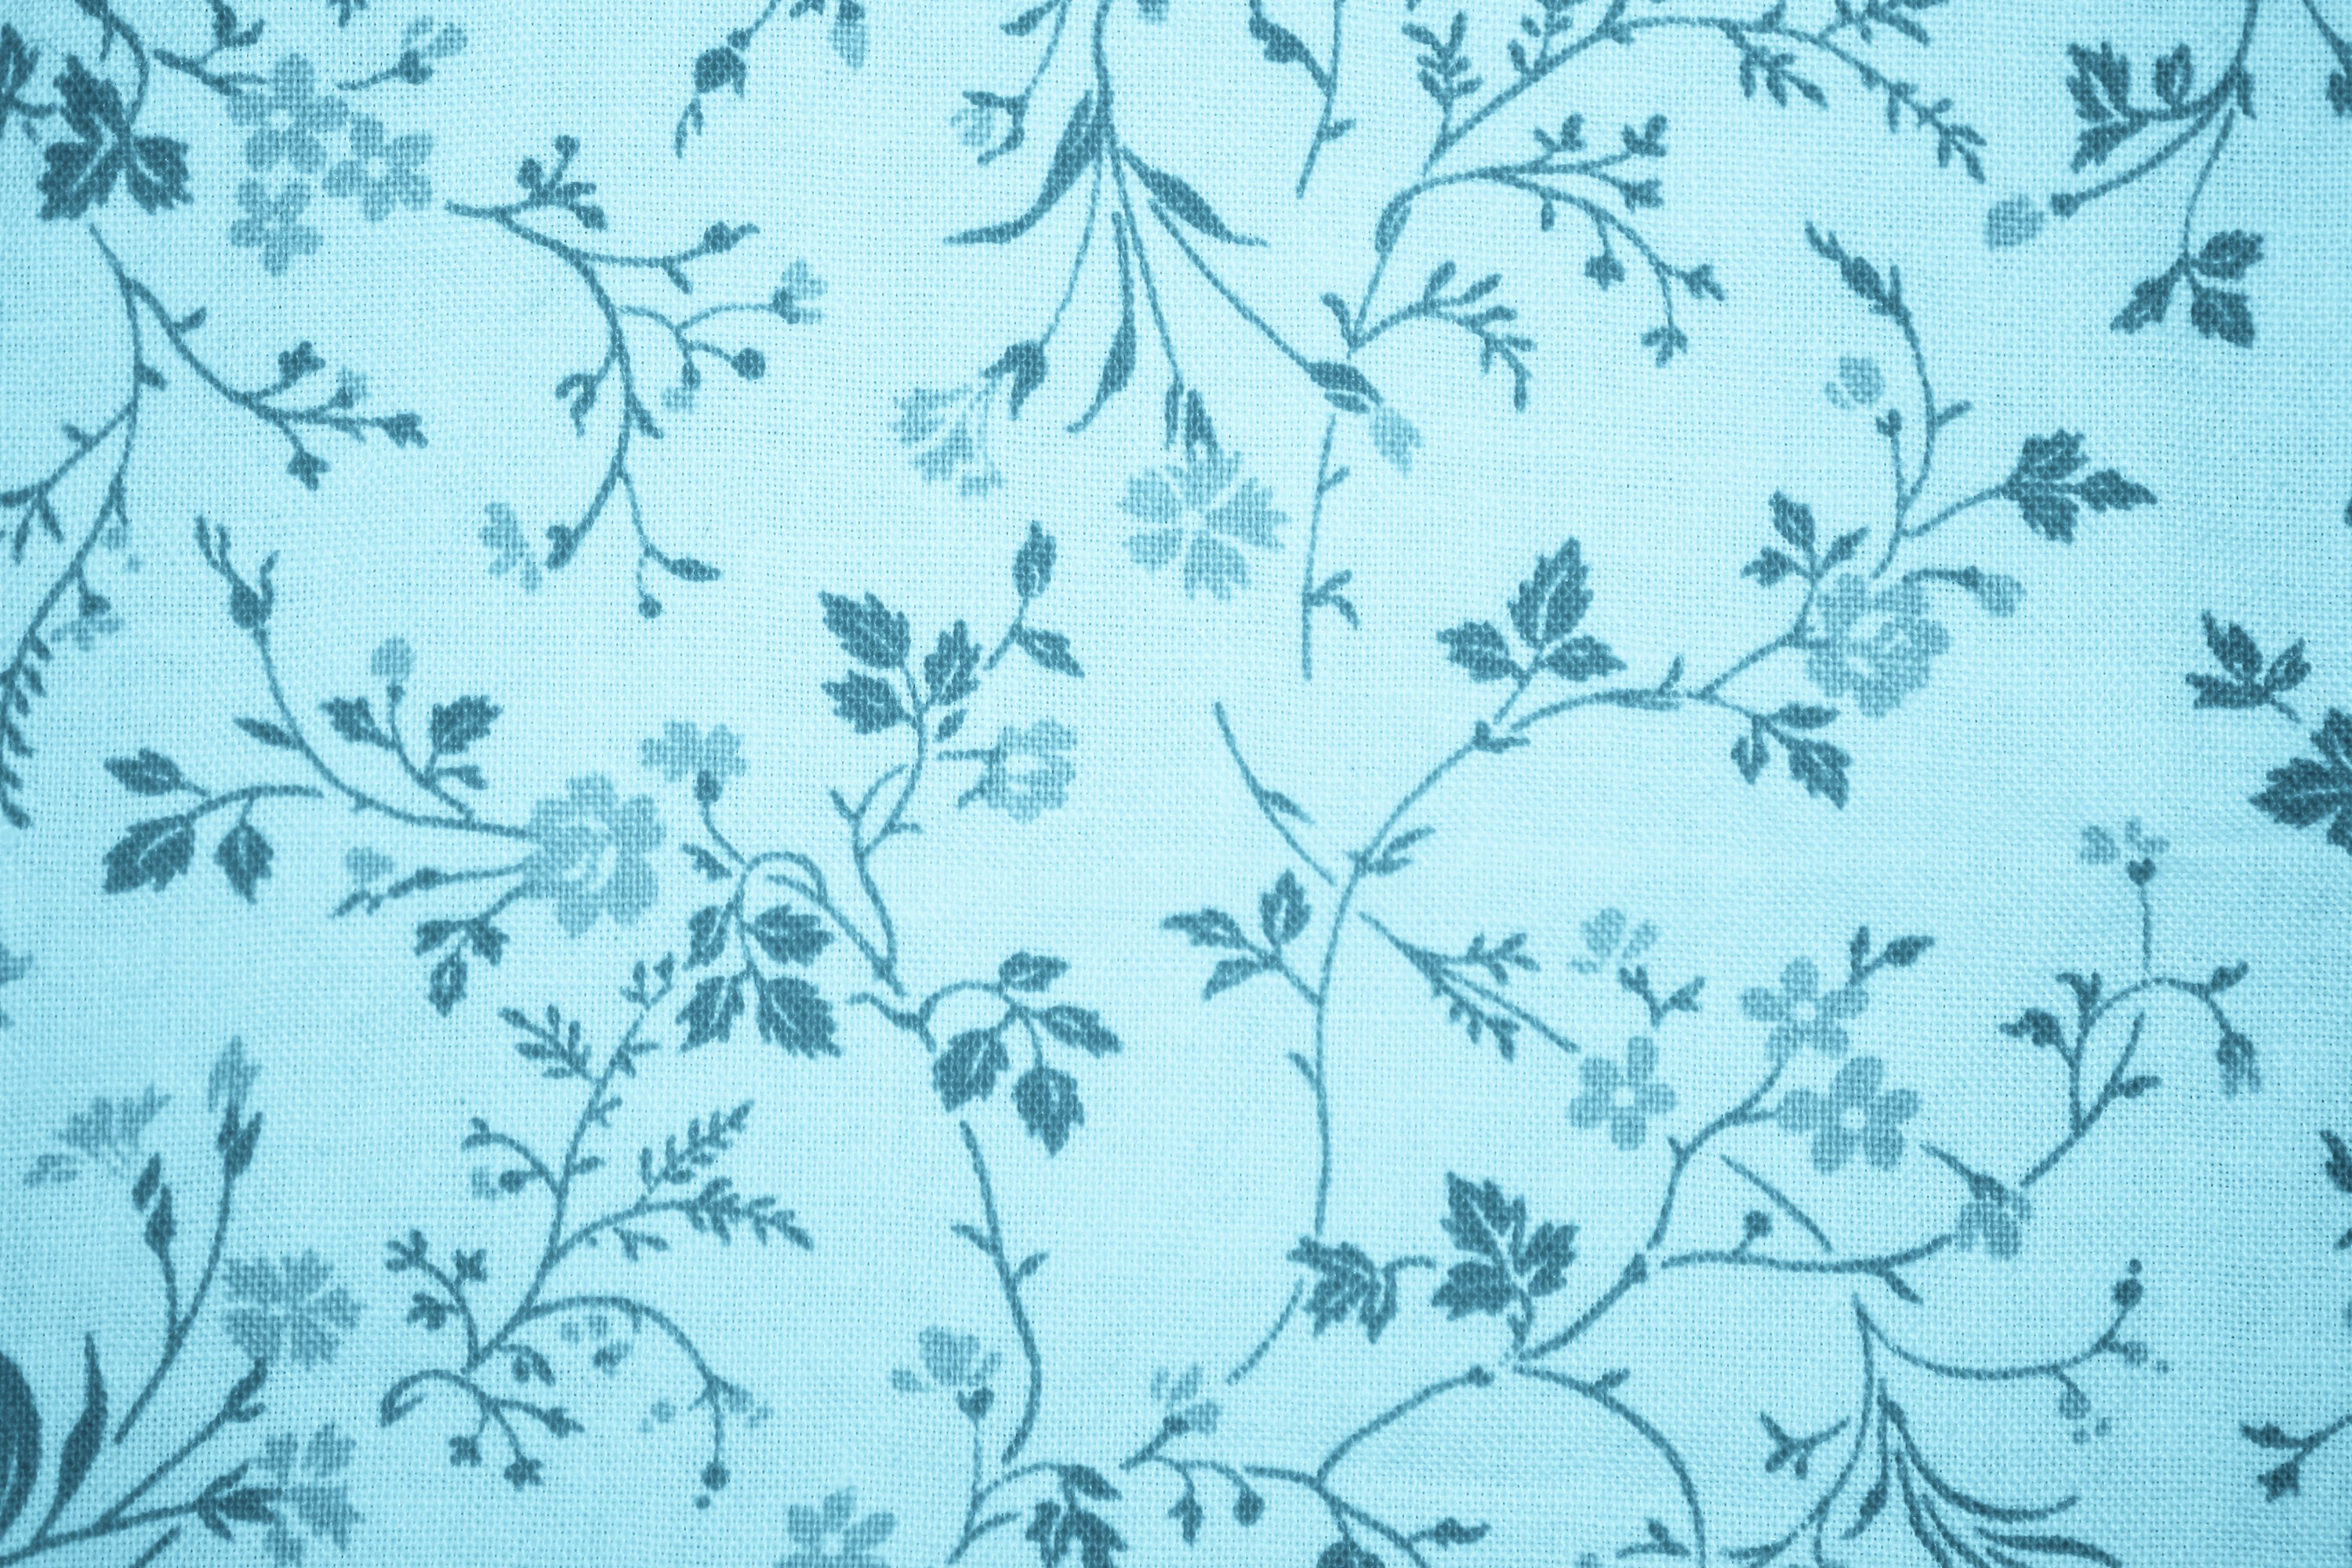 Light Blue Flower Wallpaper Images Pictures   Becuo 3000x2000